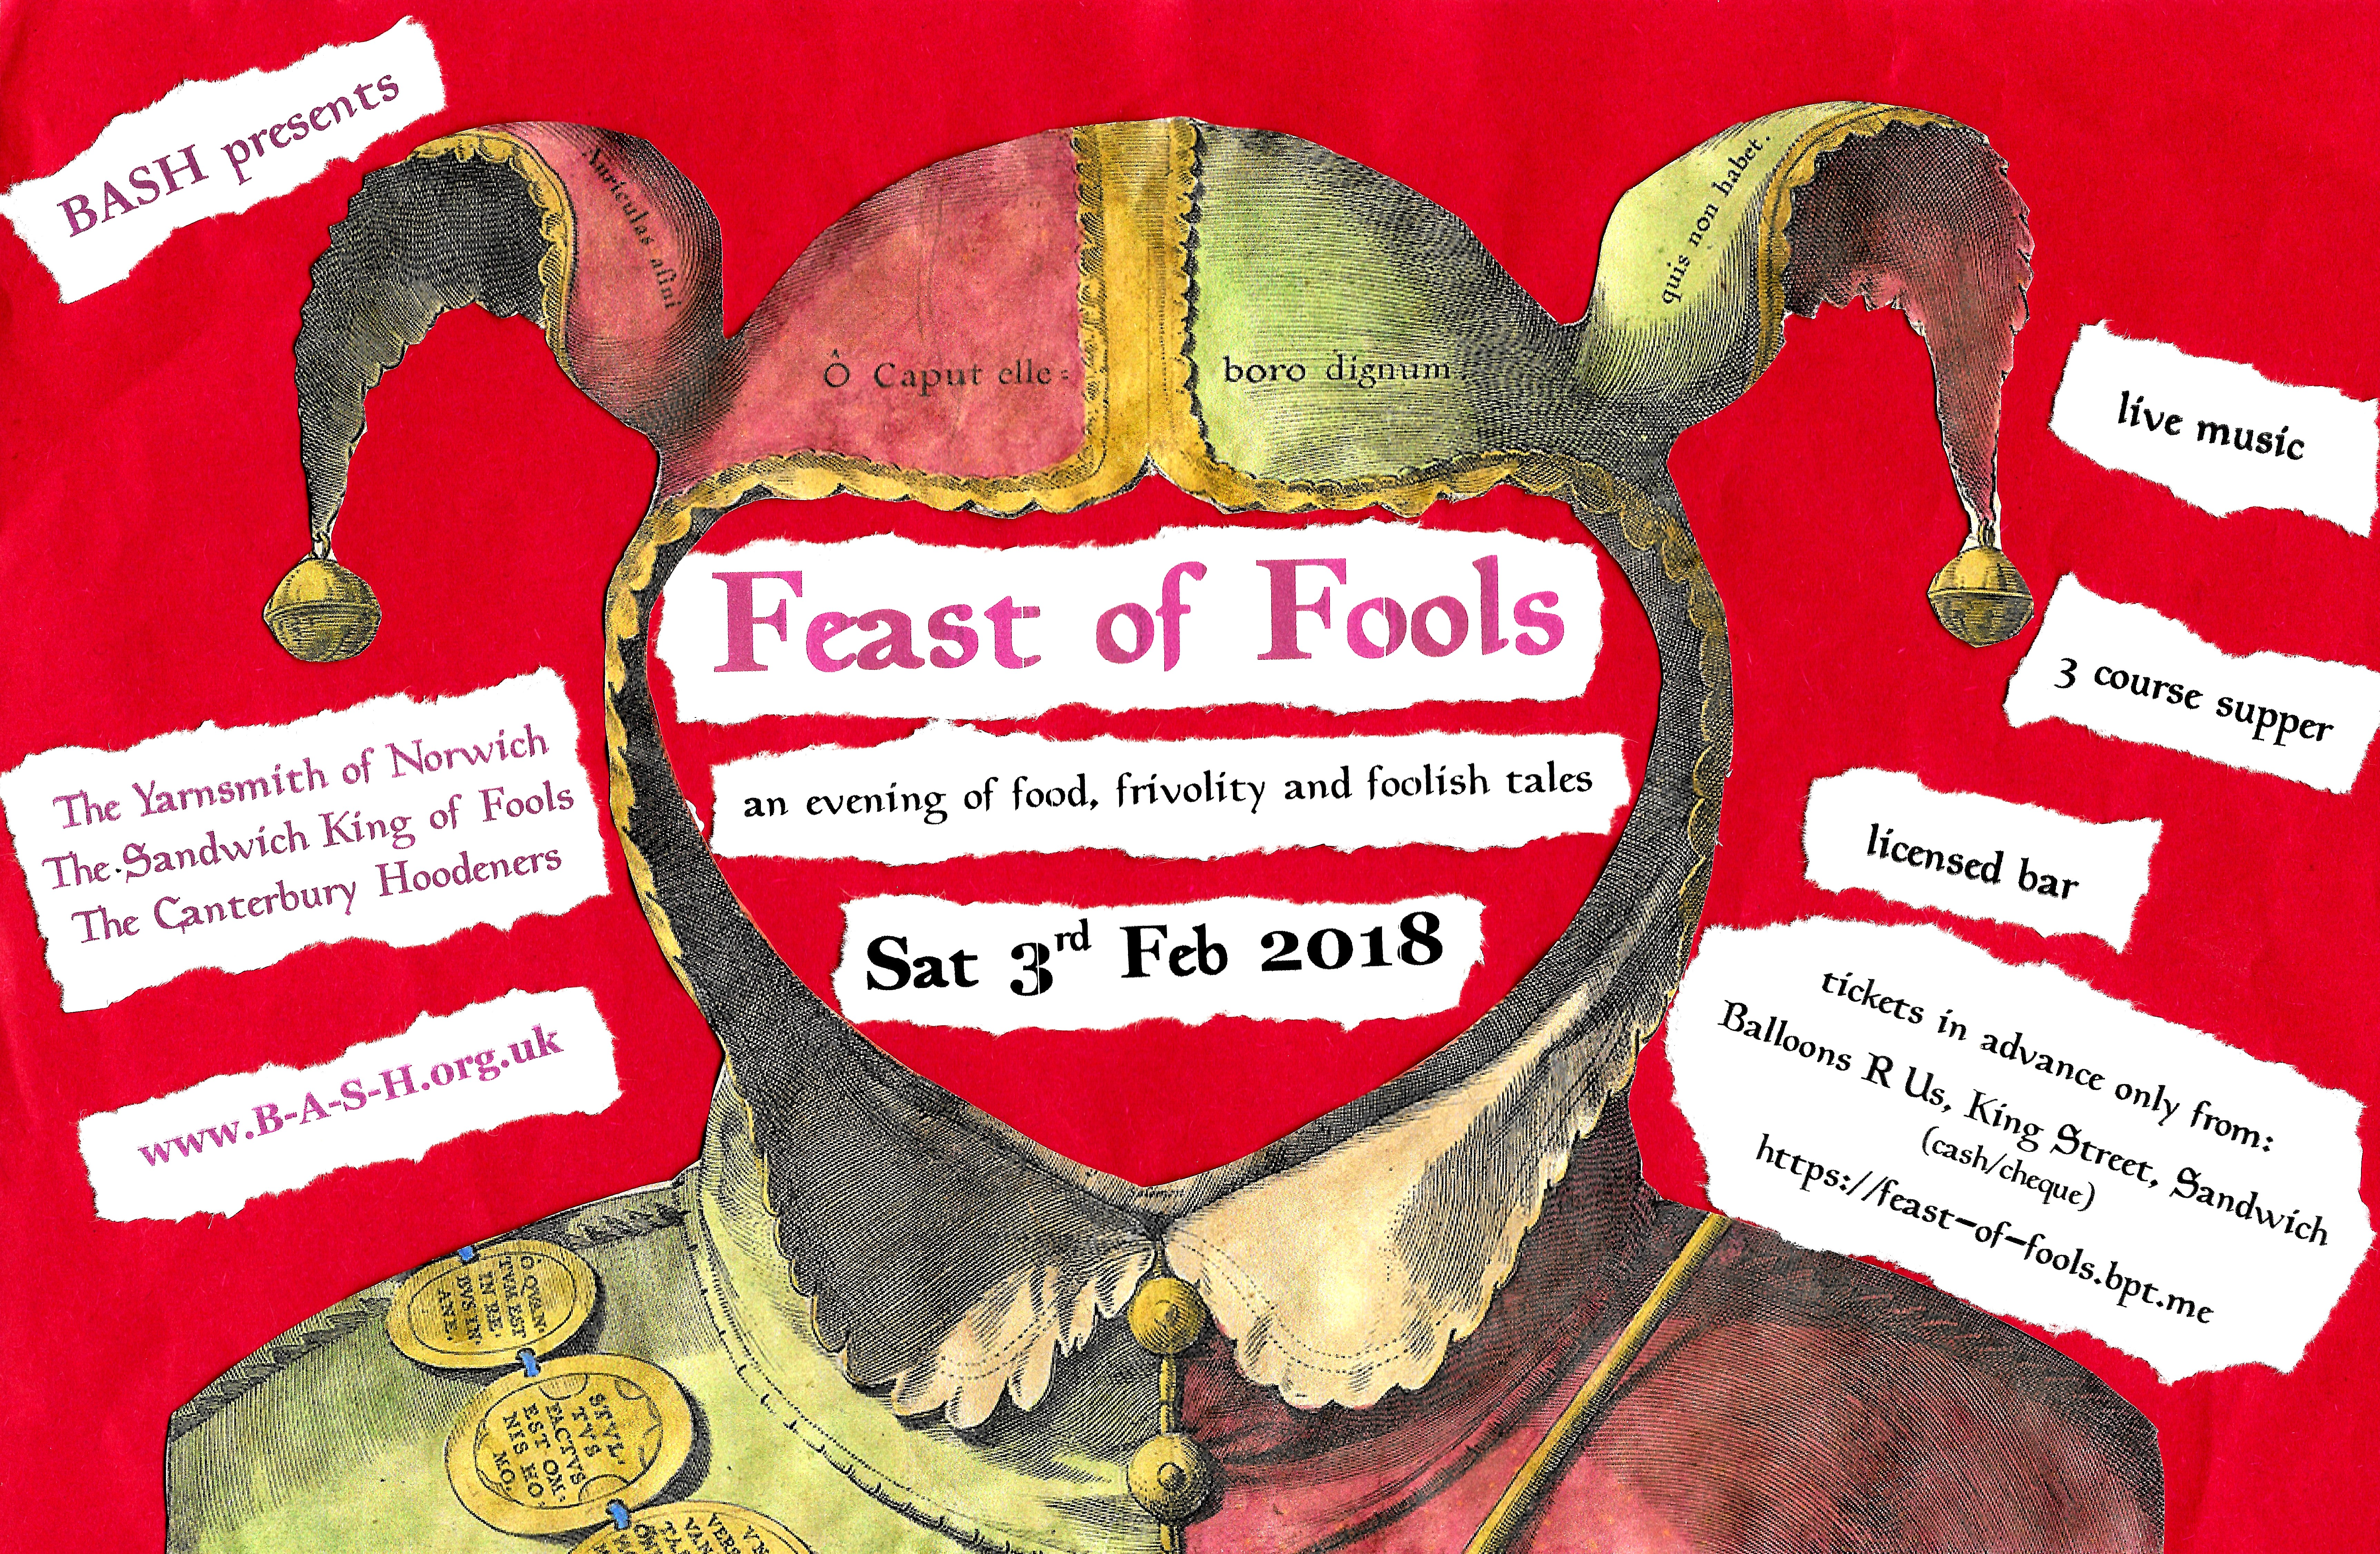 feast of fools poster bright